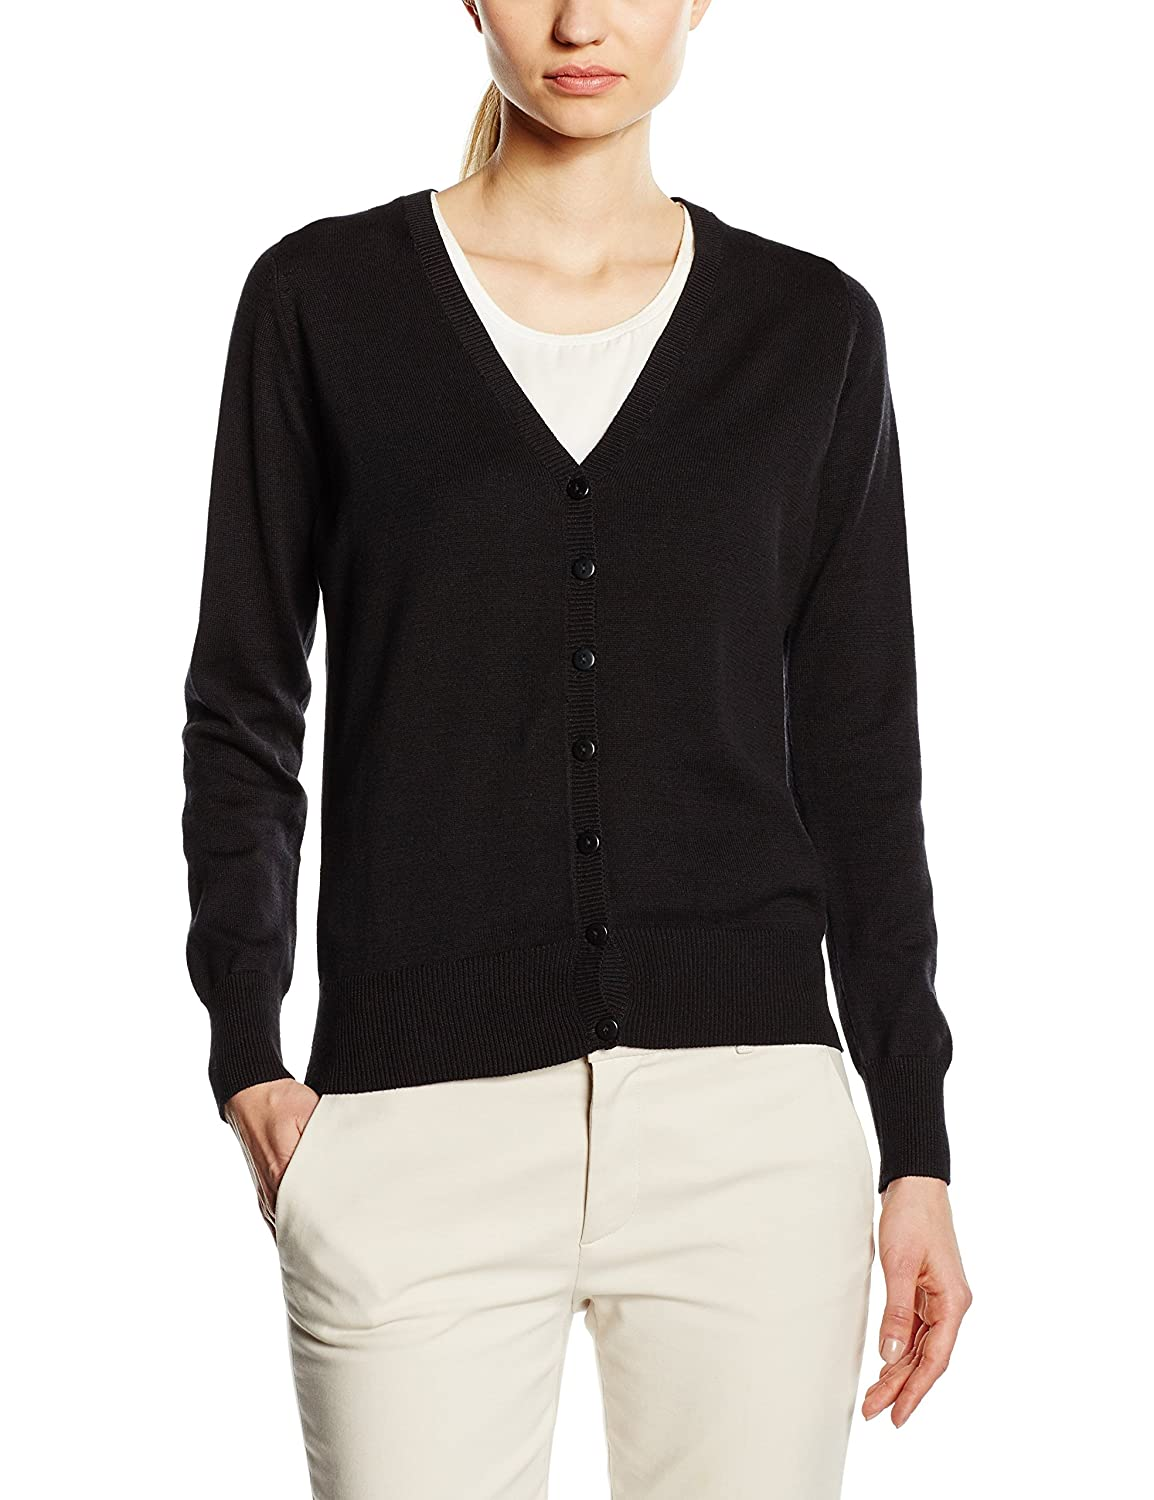 Premier Workwear Ladies Button Through Knitted Cardigan Chaqueta para Mujer